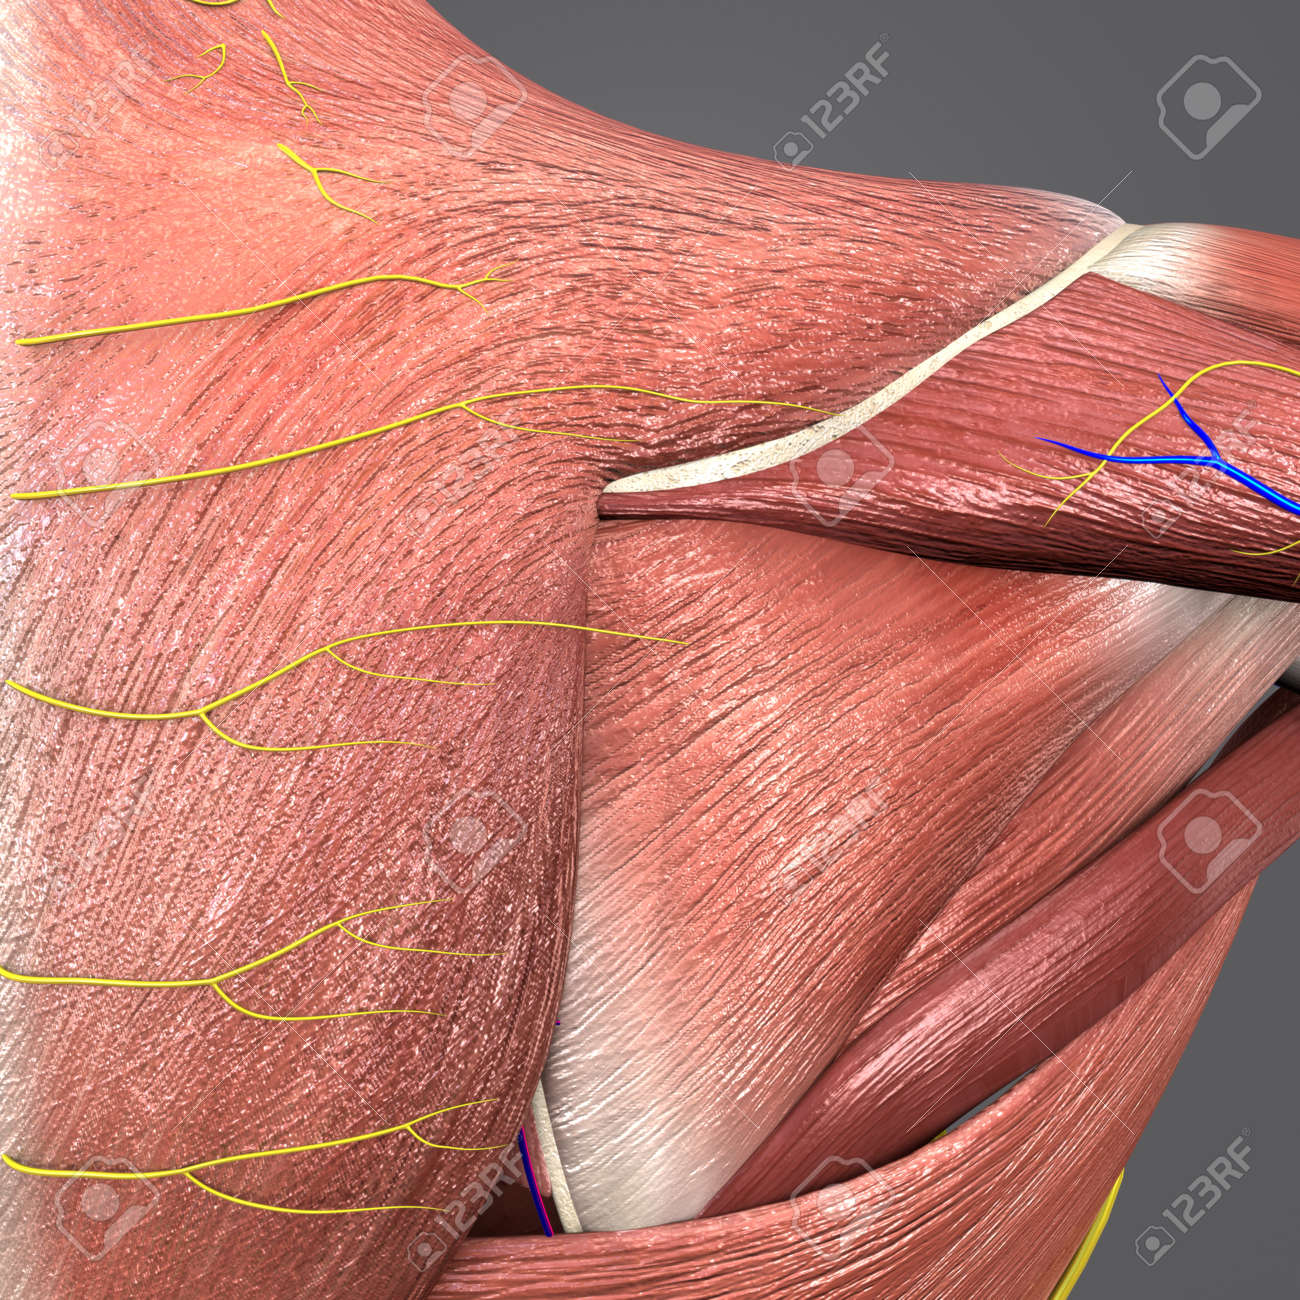 Shoulder Muscles And Bones With Circulatory System And Nerves ...